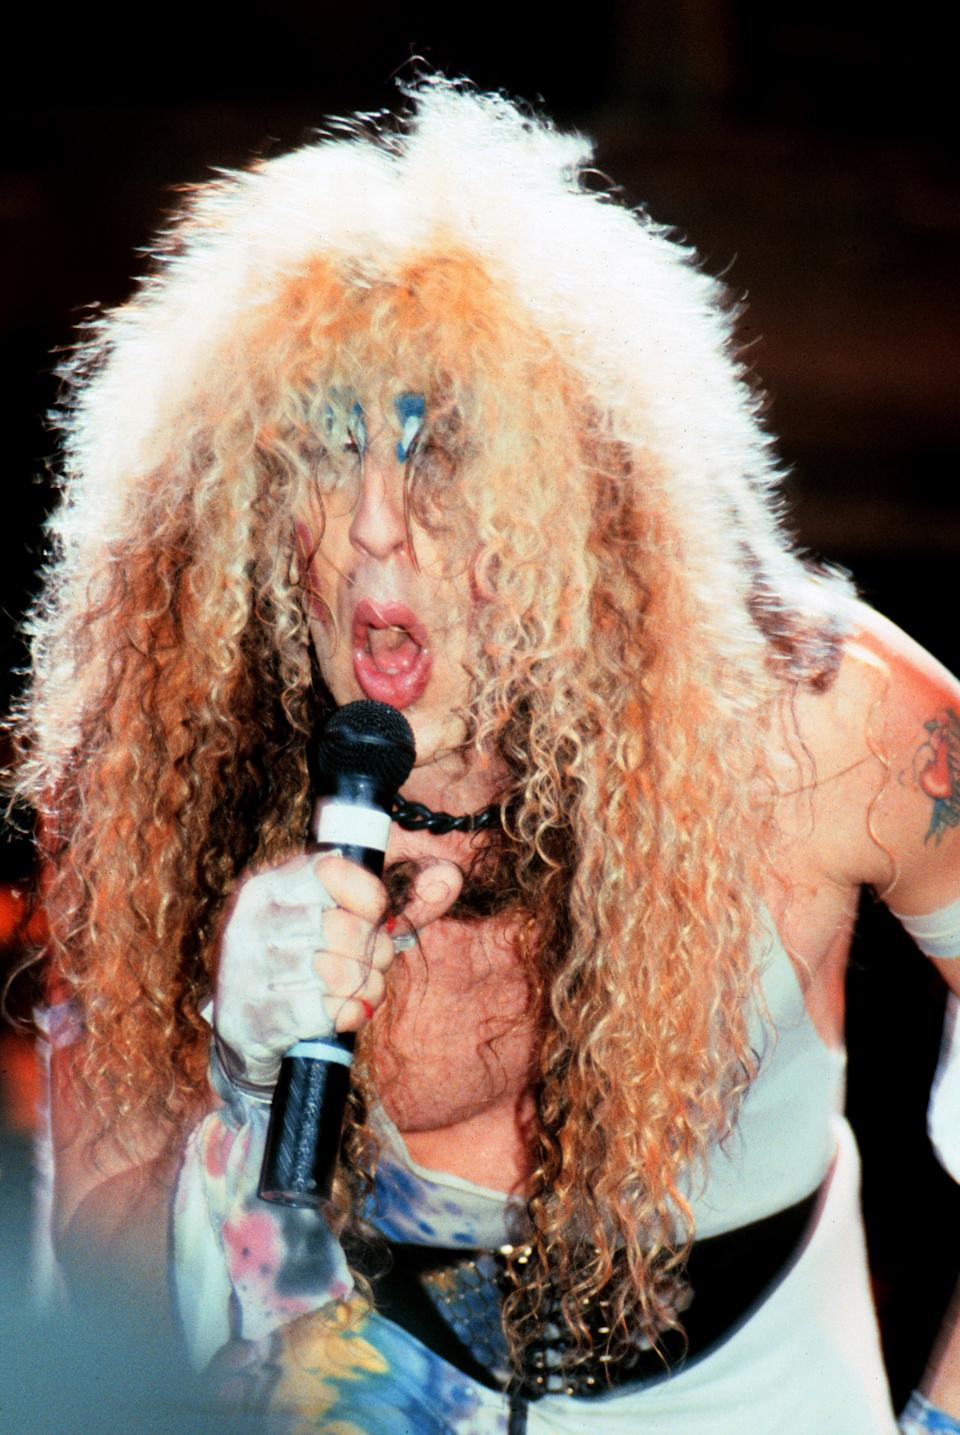 Dee Snider with Twisted Sister in the '80s. (Photo: Jim Steinfeldt/Michael Ochs Archives/Getty Images)